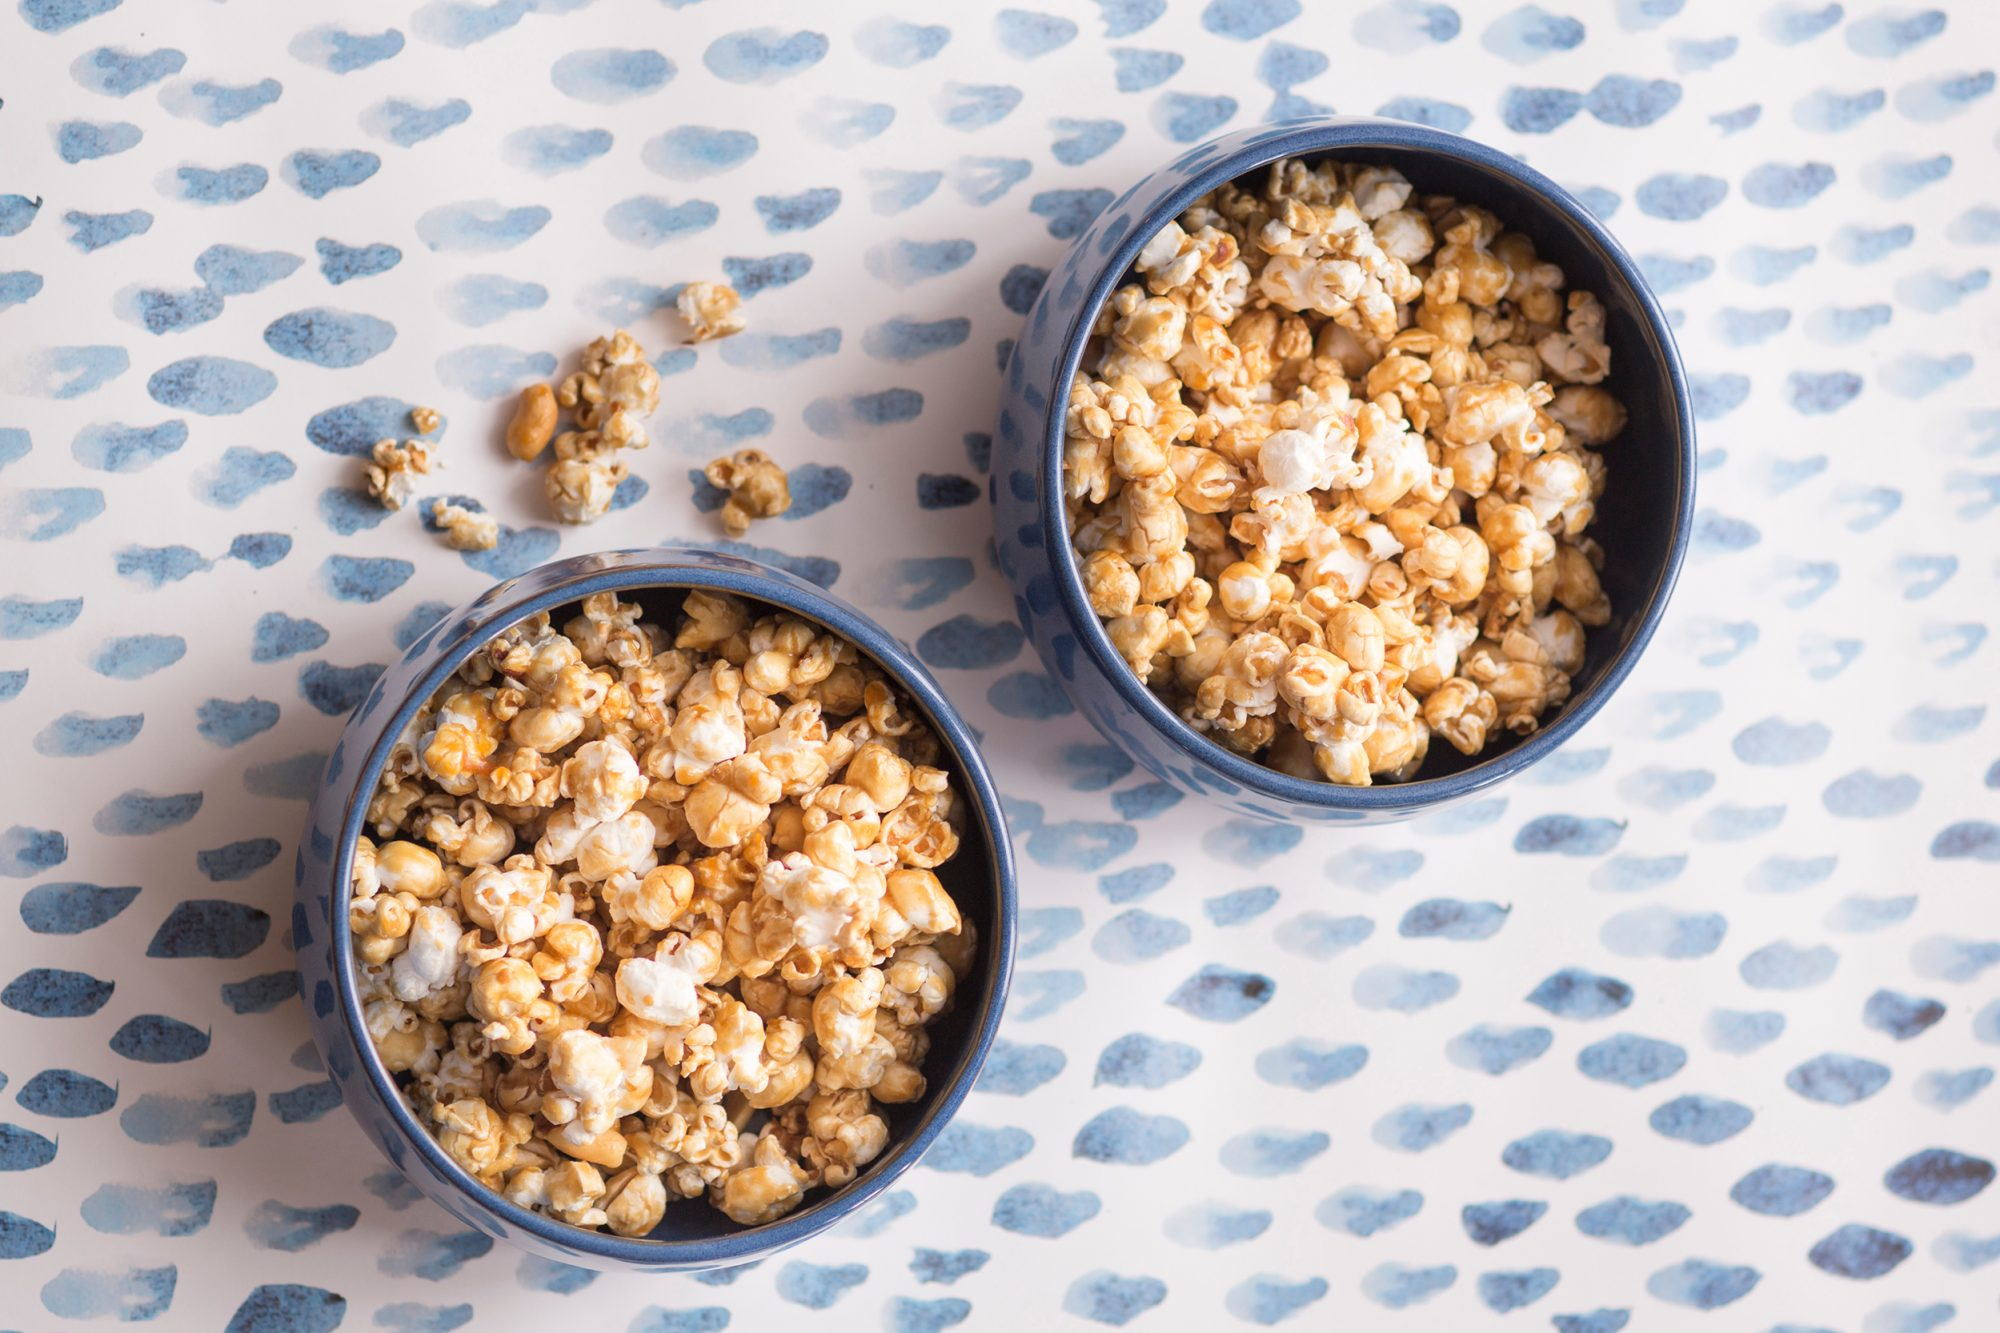 sweet popcorn in bowls on a blue patterned background